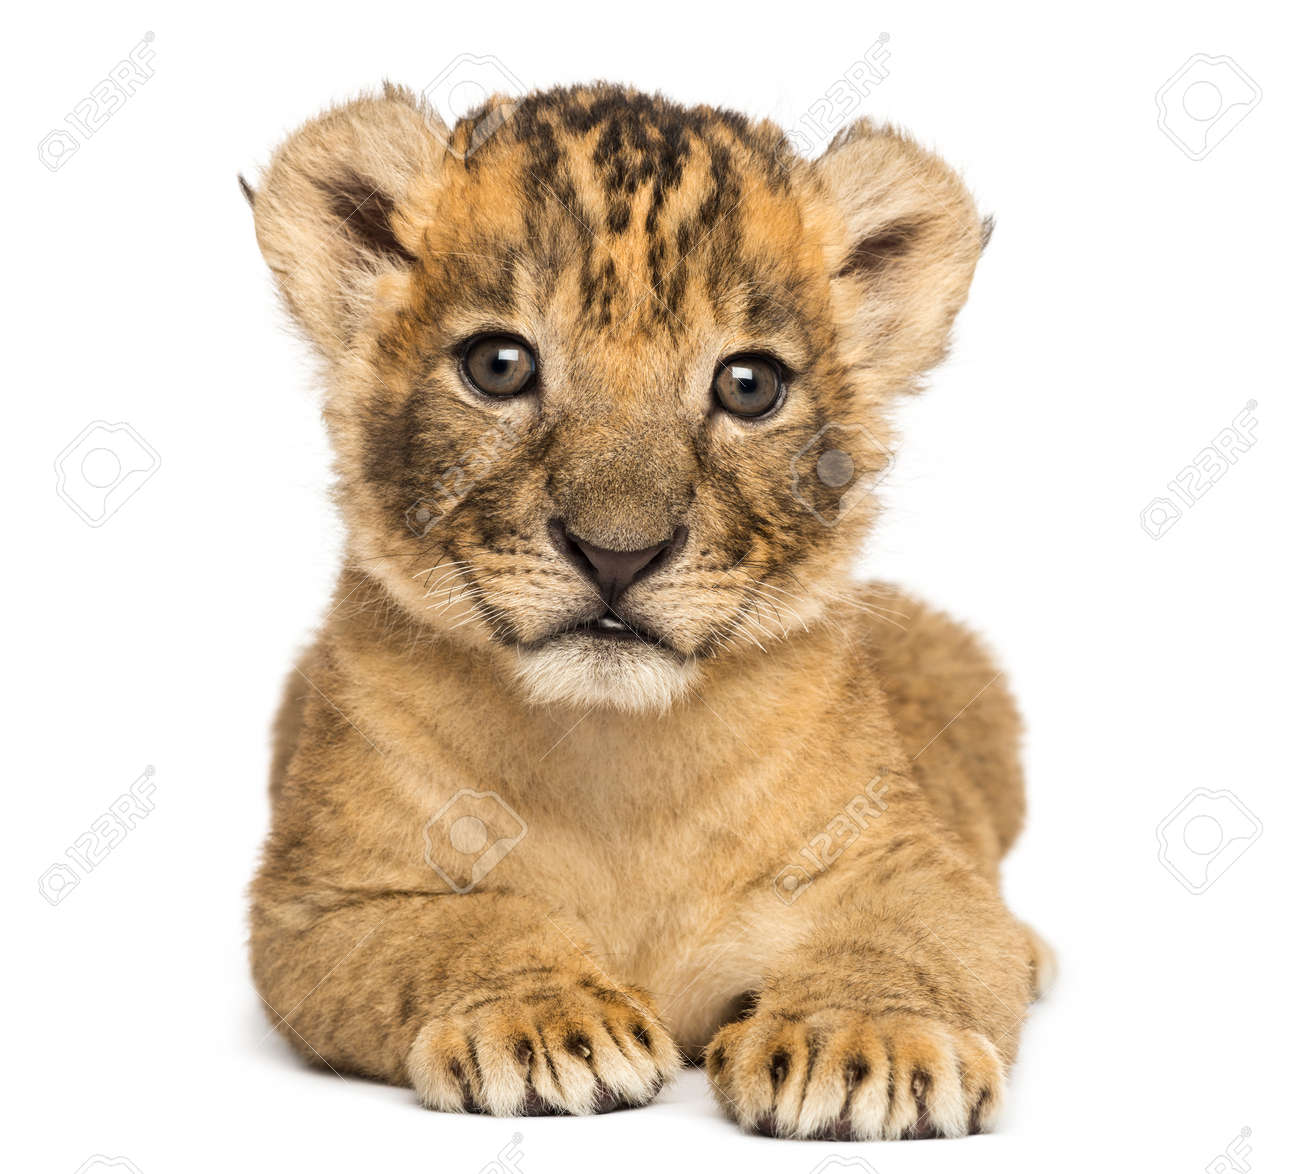 Front view of a Lion cub lying down, 4 weeks old, isolated on white - 90243369